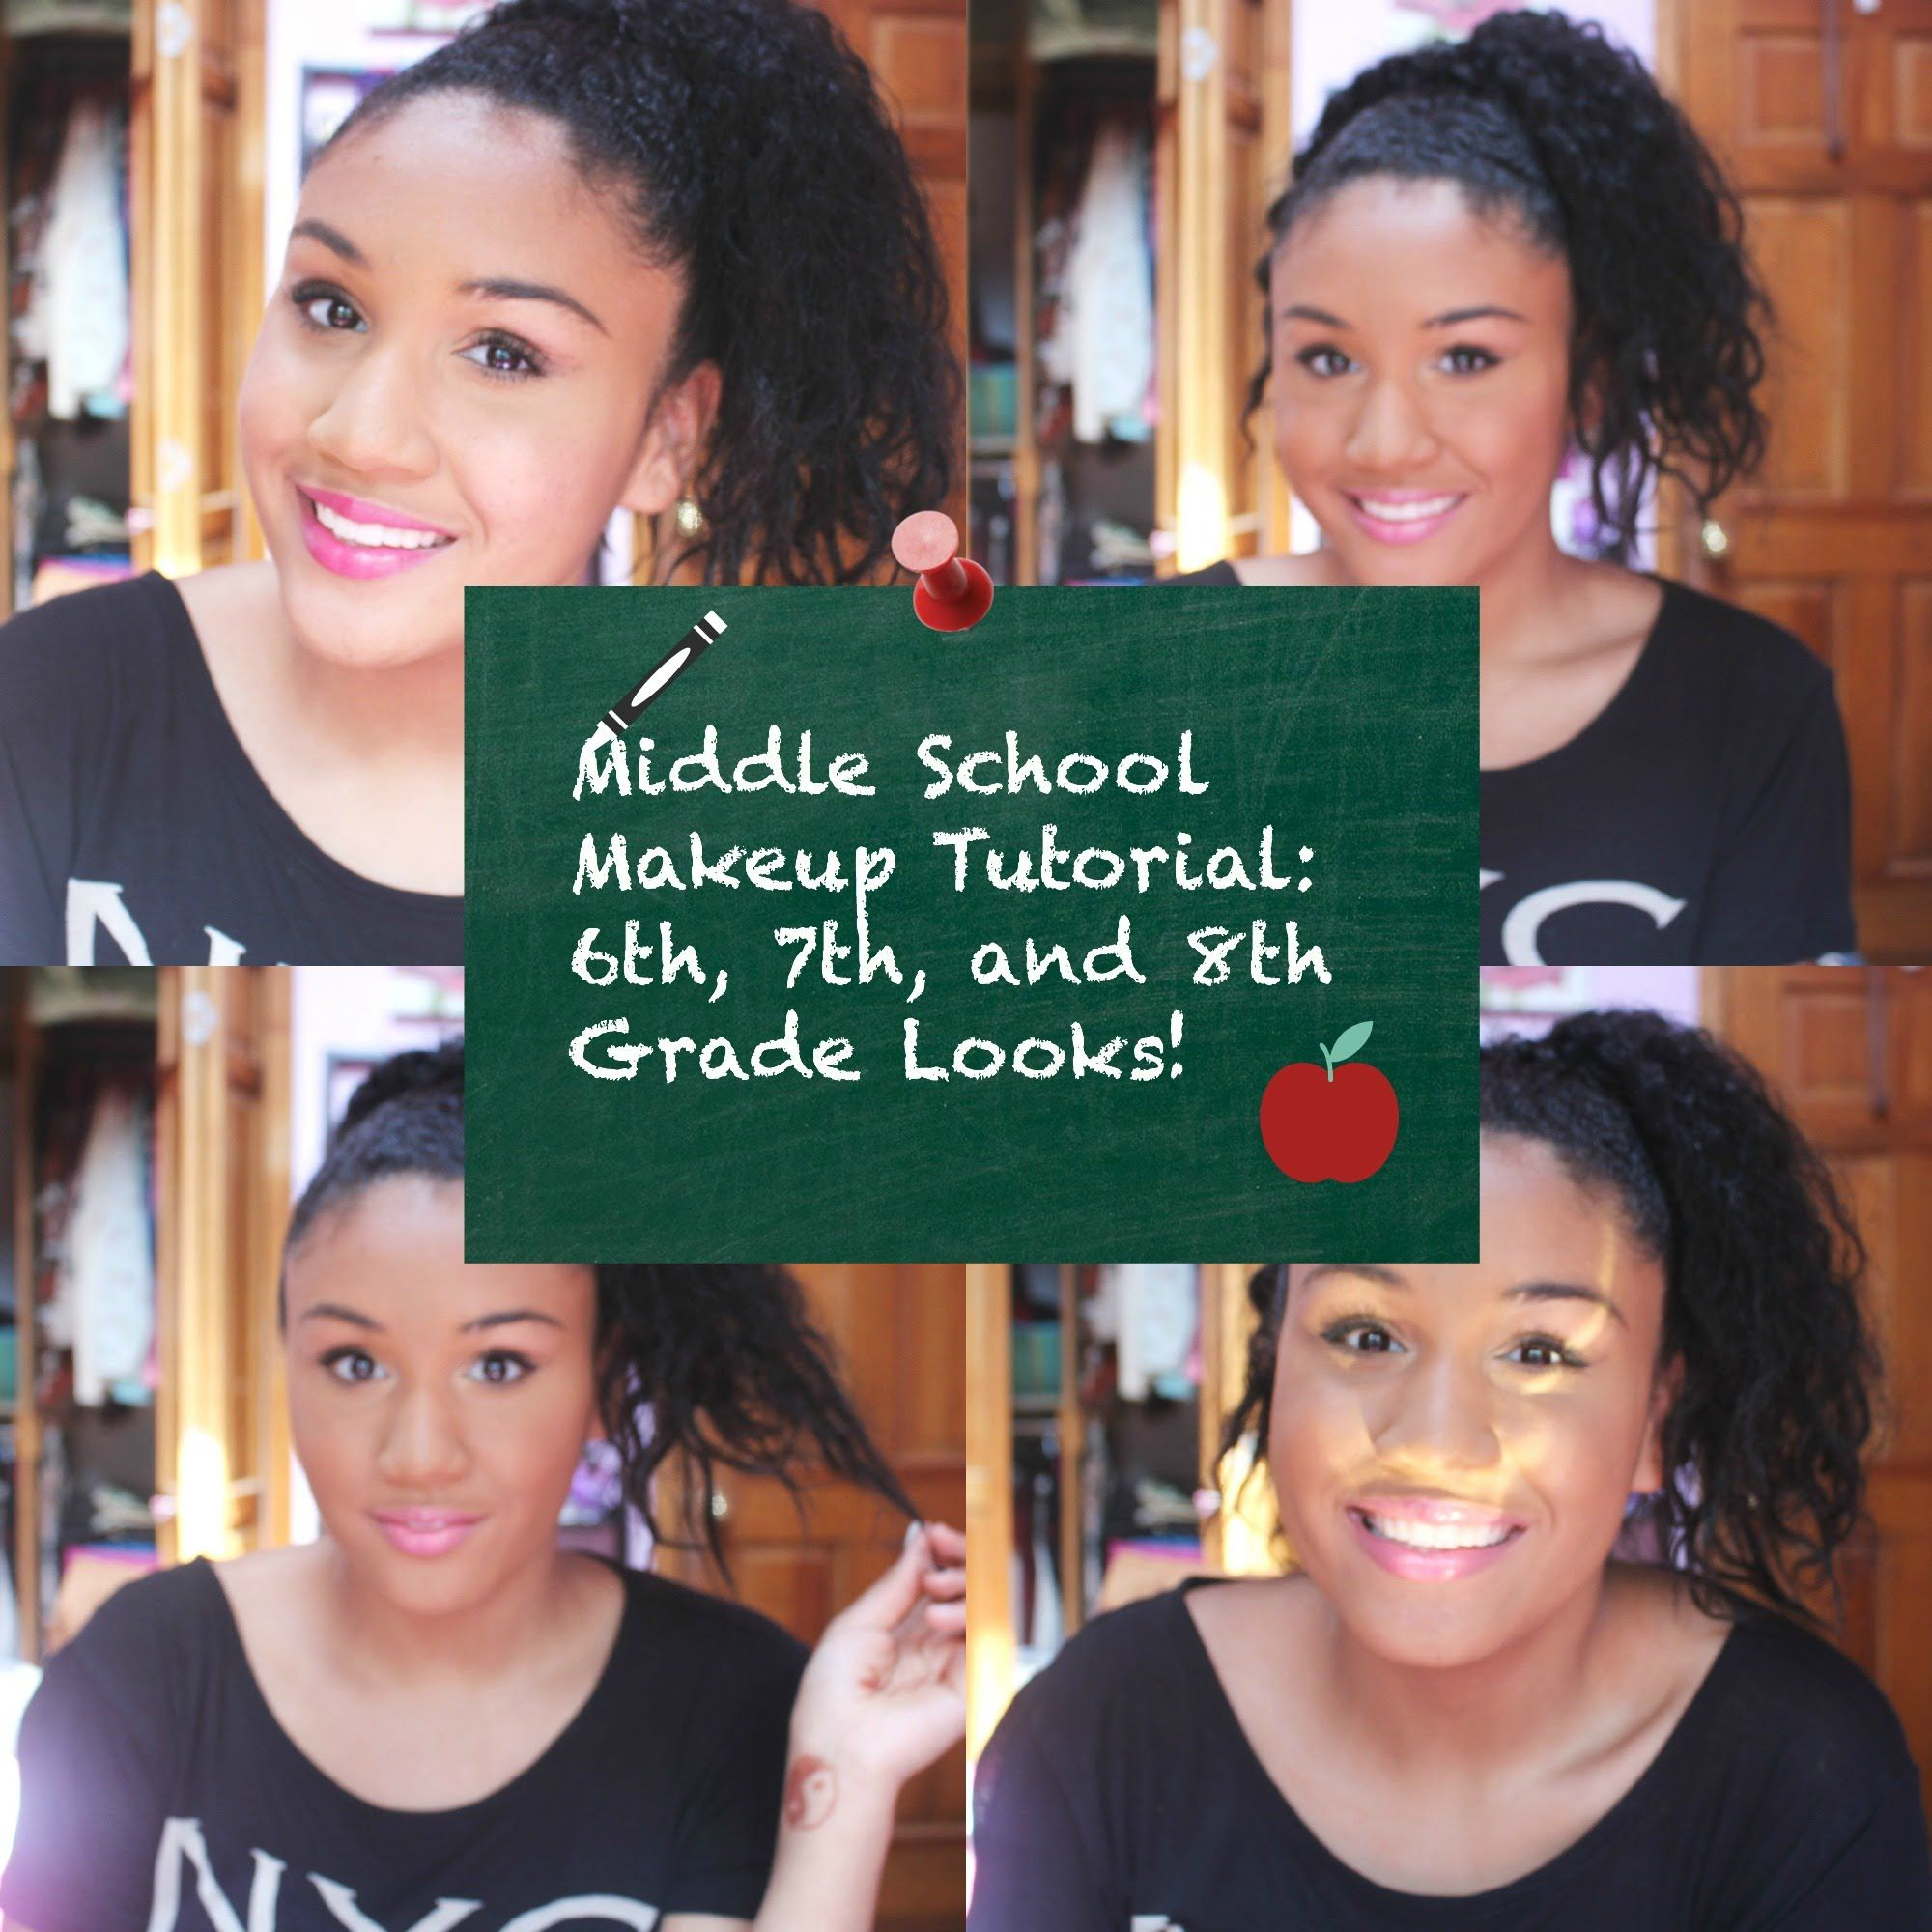 Middle School Makeup Tutorial 6th, 7th, and 8th Grade